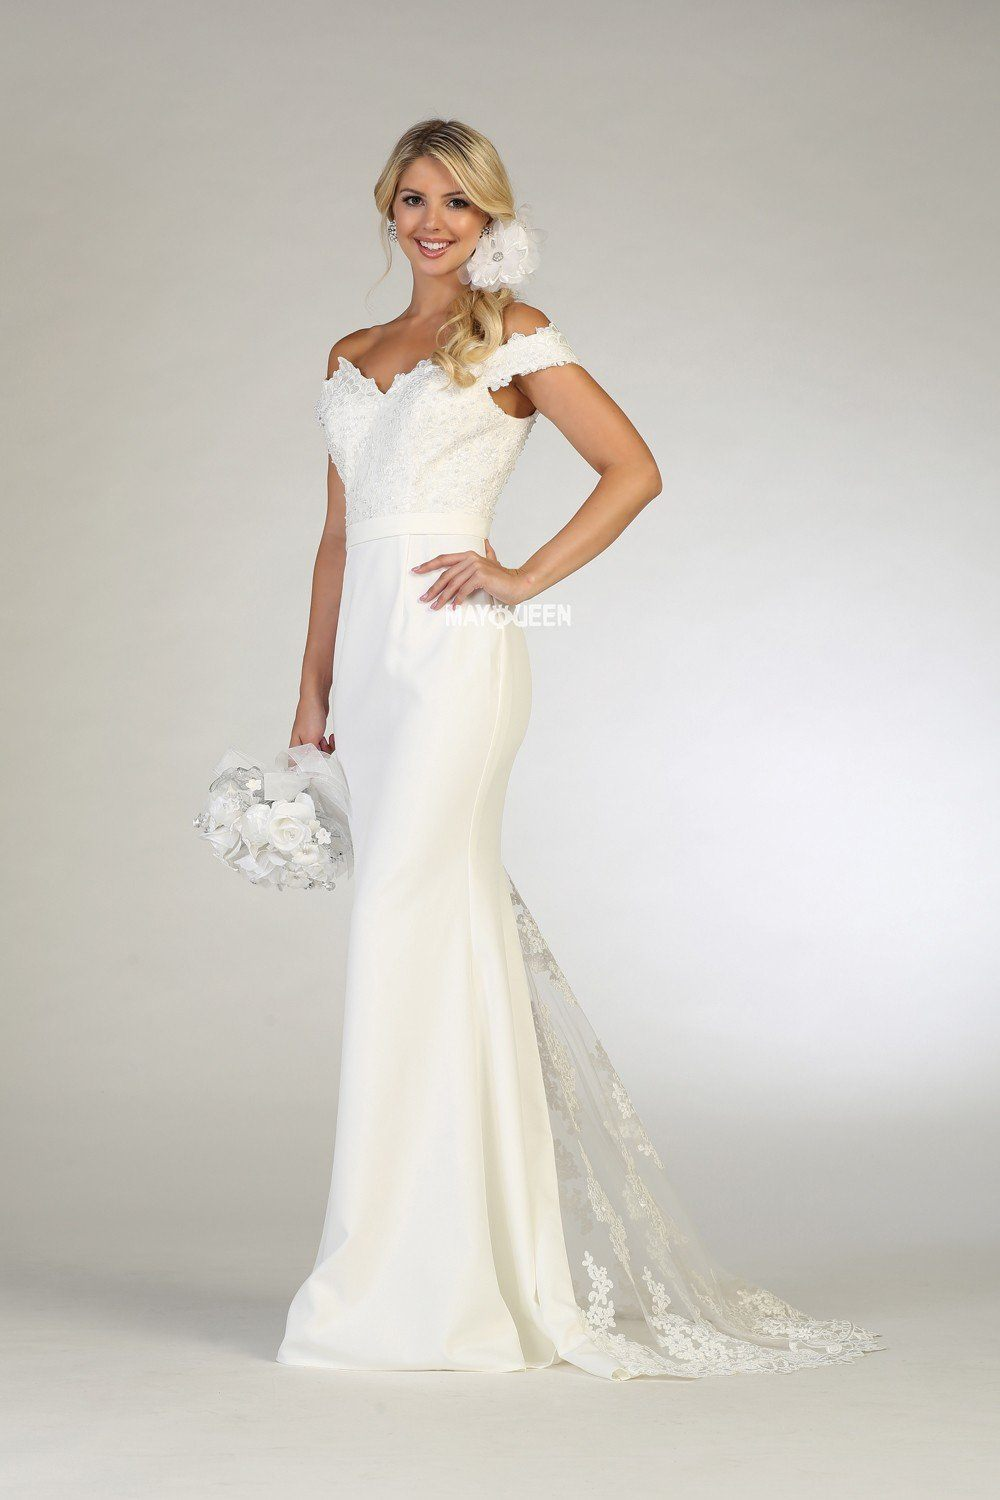 Vow renewal dress Rq7659-Simply Fab Dress